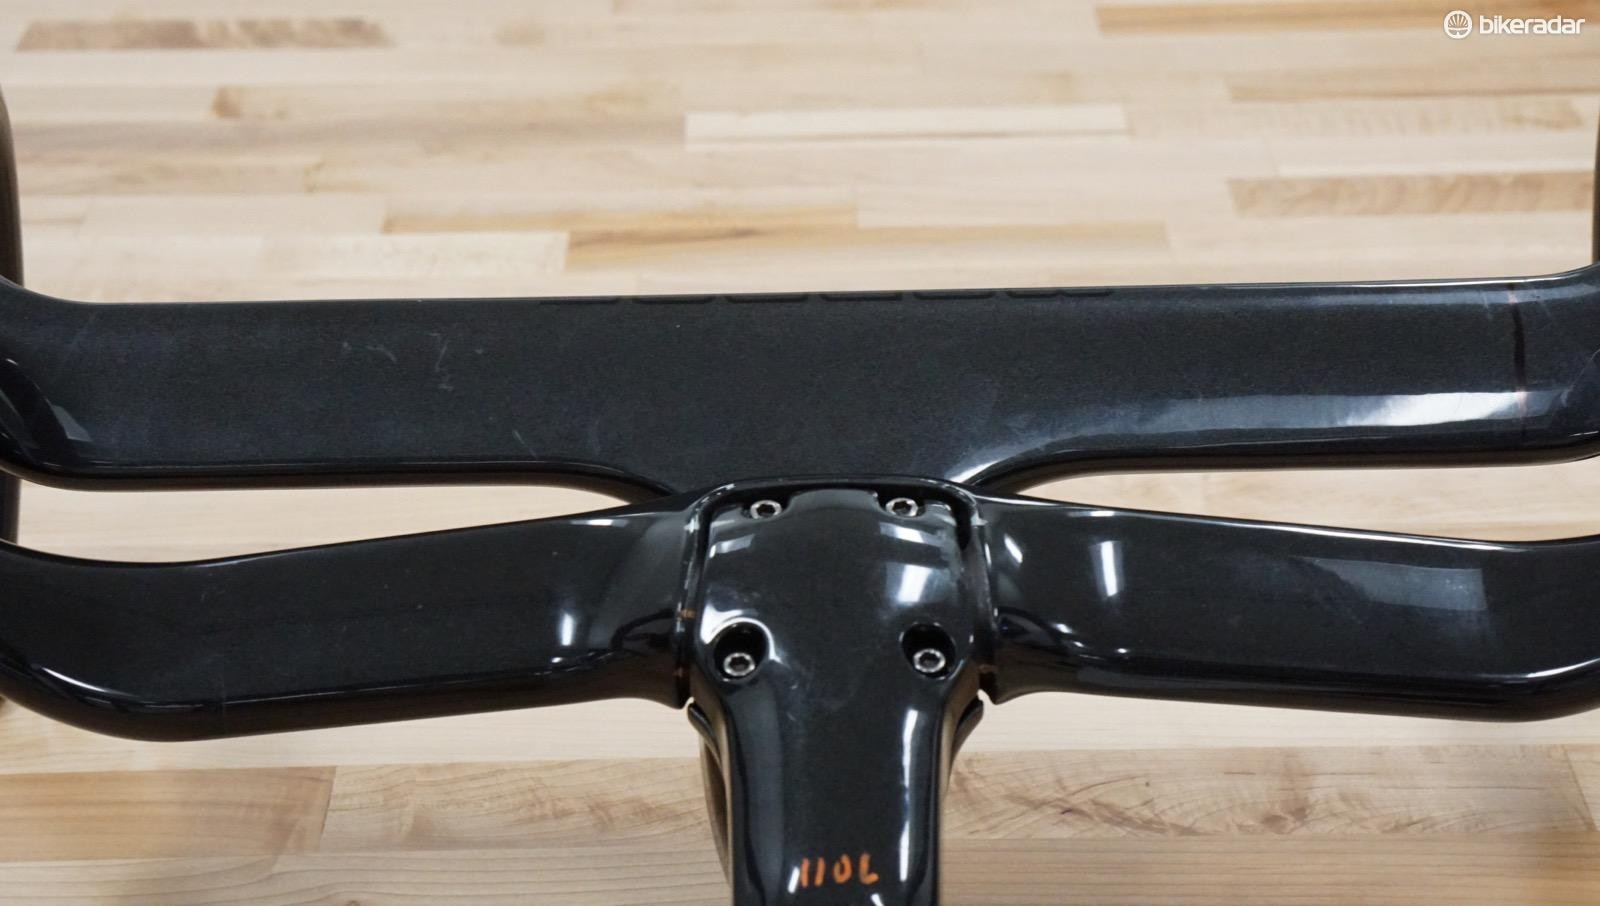 The new Madone bar/stem has +/-5 degrees of bar rotation, compared to the past monocoque design